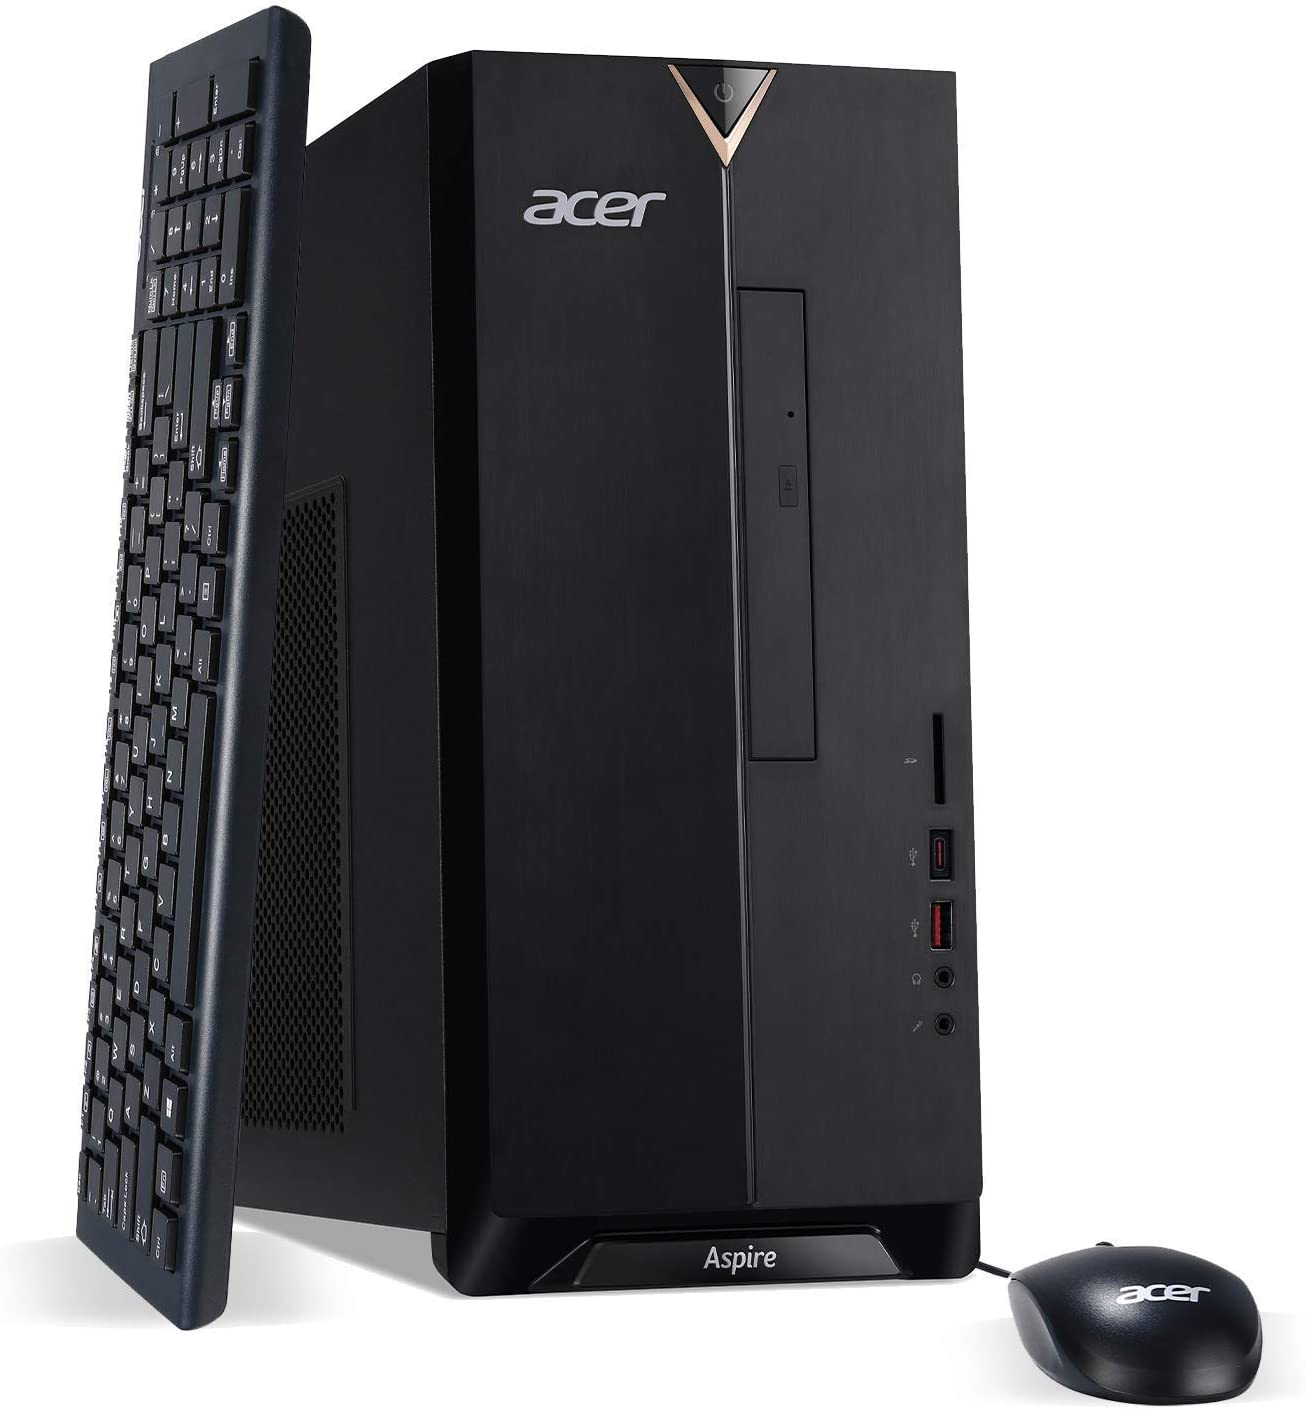 Acer Aspire TC Desktop Intel Core i3-9100 3.6GHz 8GB Ram 512GB SSD Windows 10 Home (Renewed)